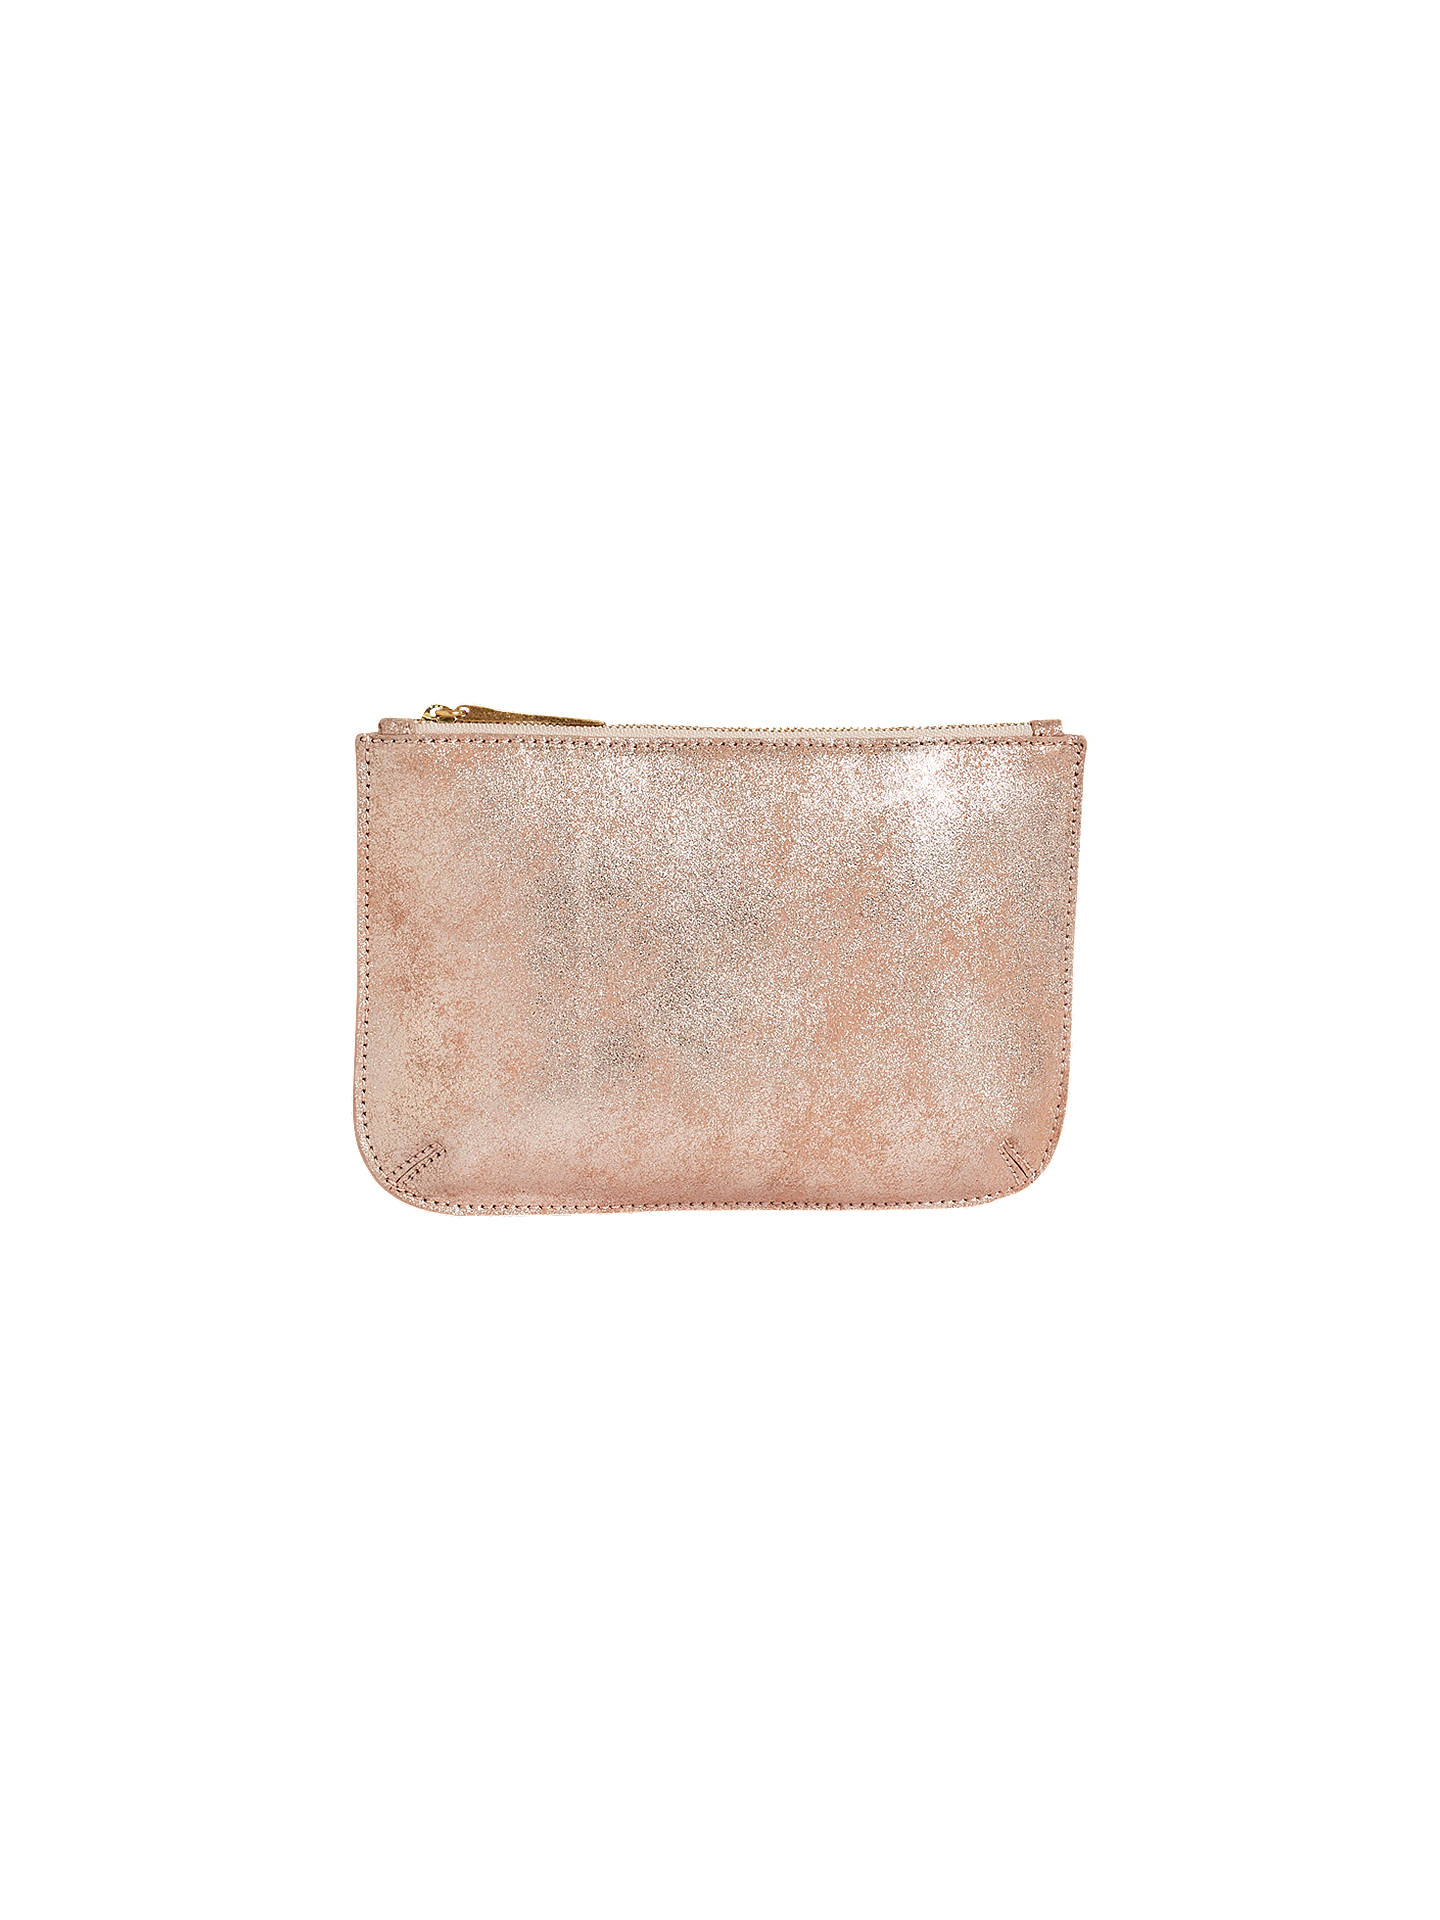 104239f82c6 Buy Jigsaw Alba Medium Textured Leather Pouch Clutch, Gold Online at  johnlewis.com ...